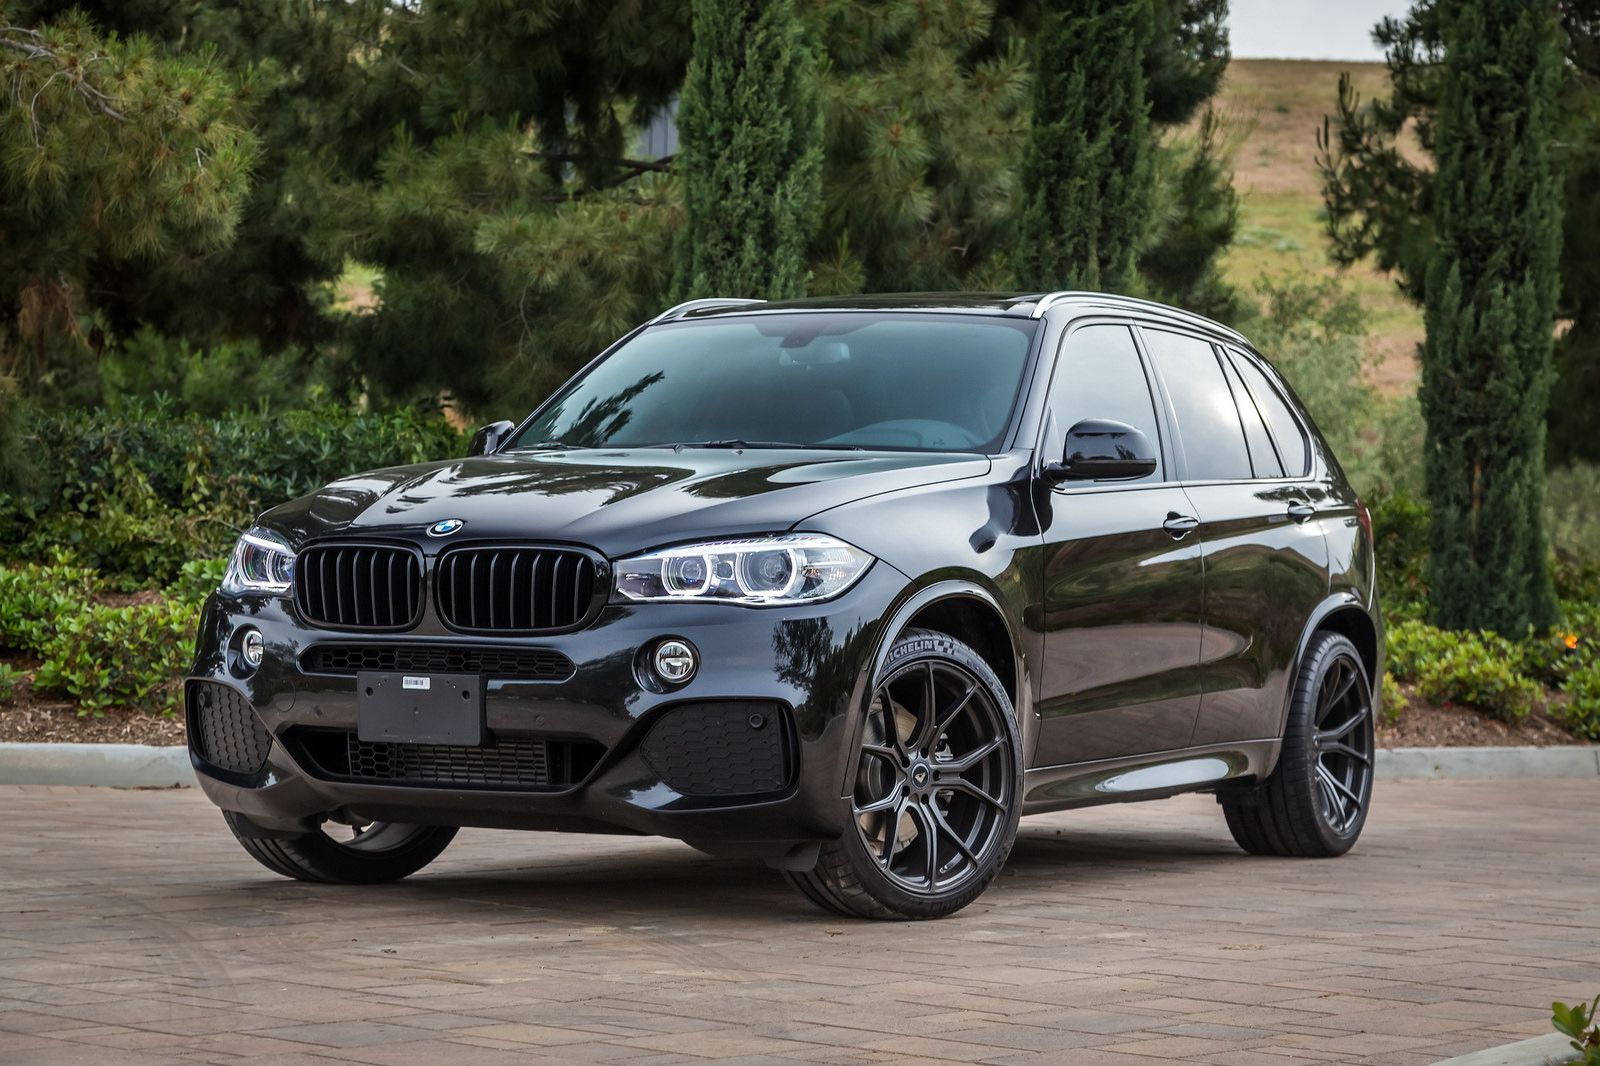 Bmw Recalls 36 Model Year 2017 Bmw X5 To Replace Airbag Modules